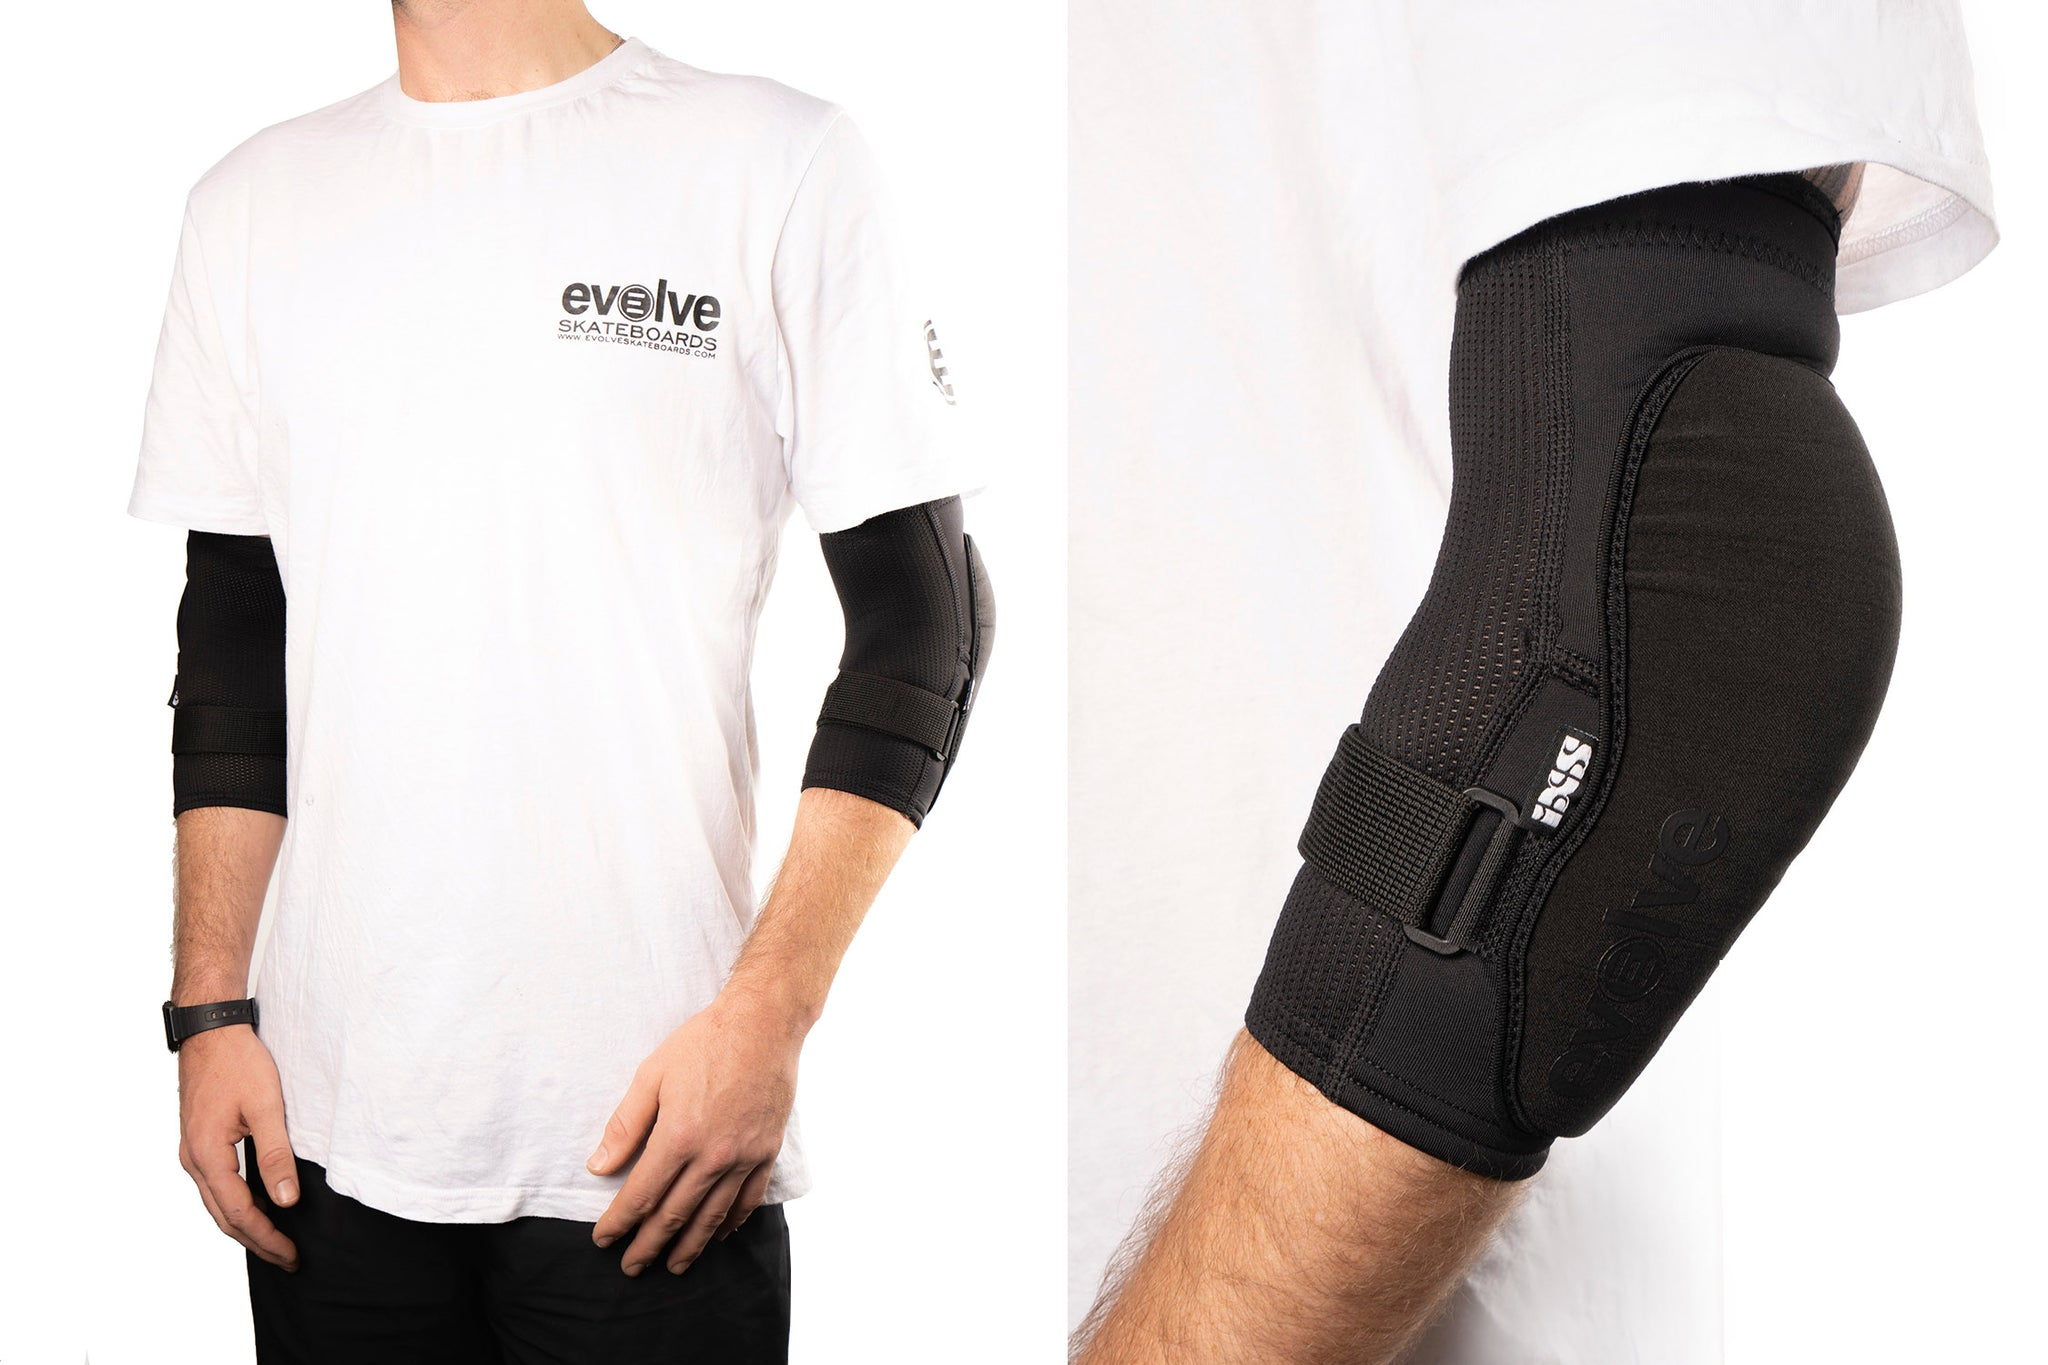 Evolve iXS Flow Evo+ Elbow Guards